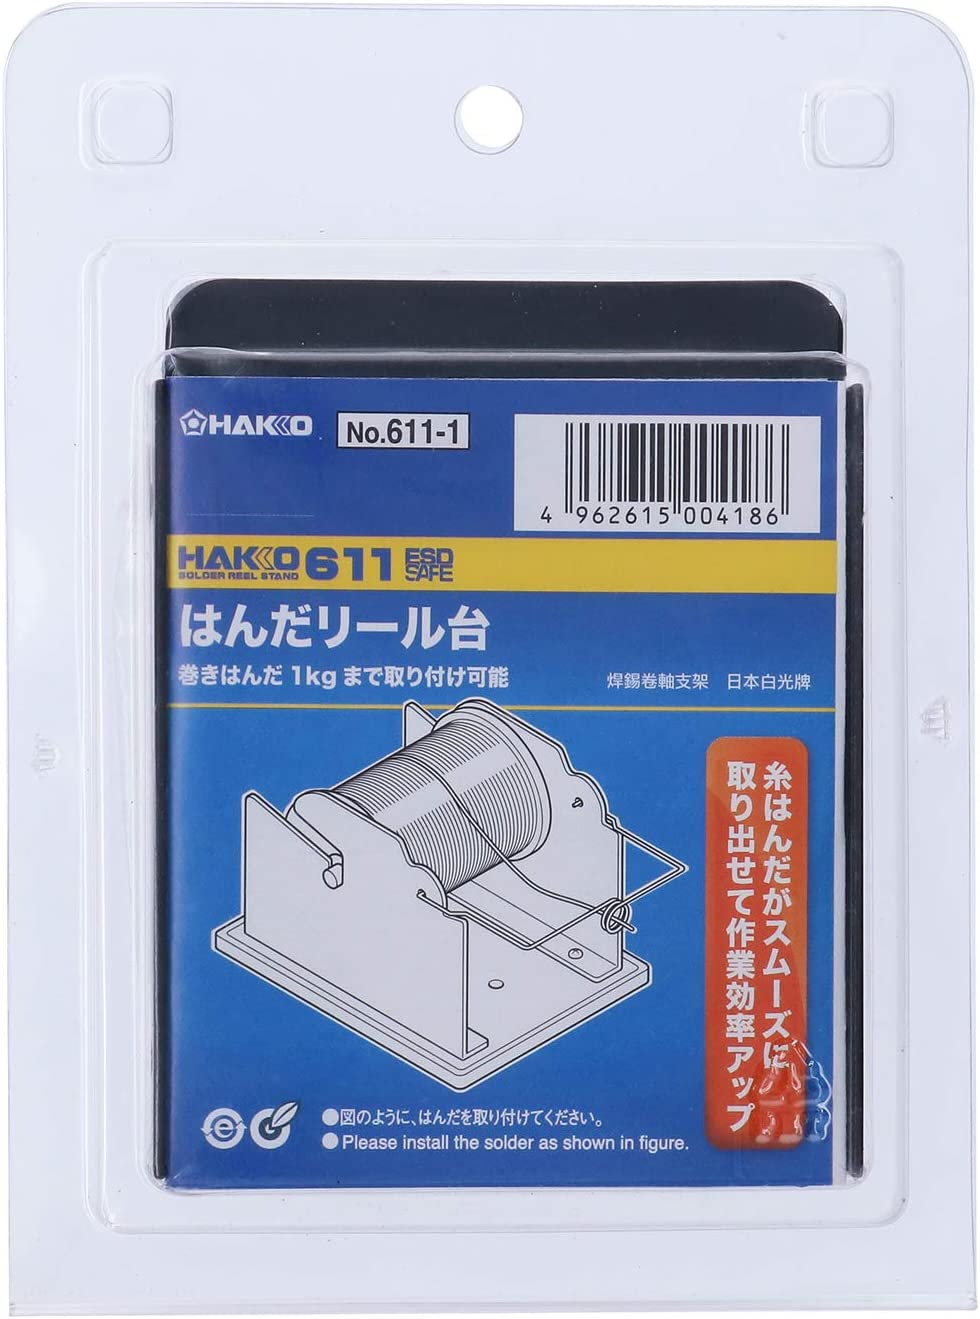 Hakko 611-1 ESD-Safe Solder Reel Stand Black Fast Free Shipping Brand New